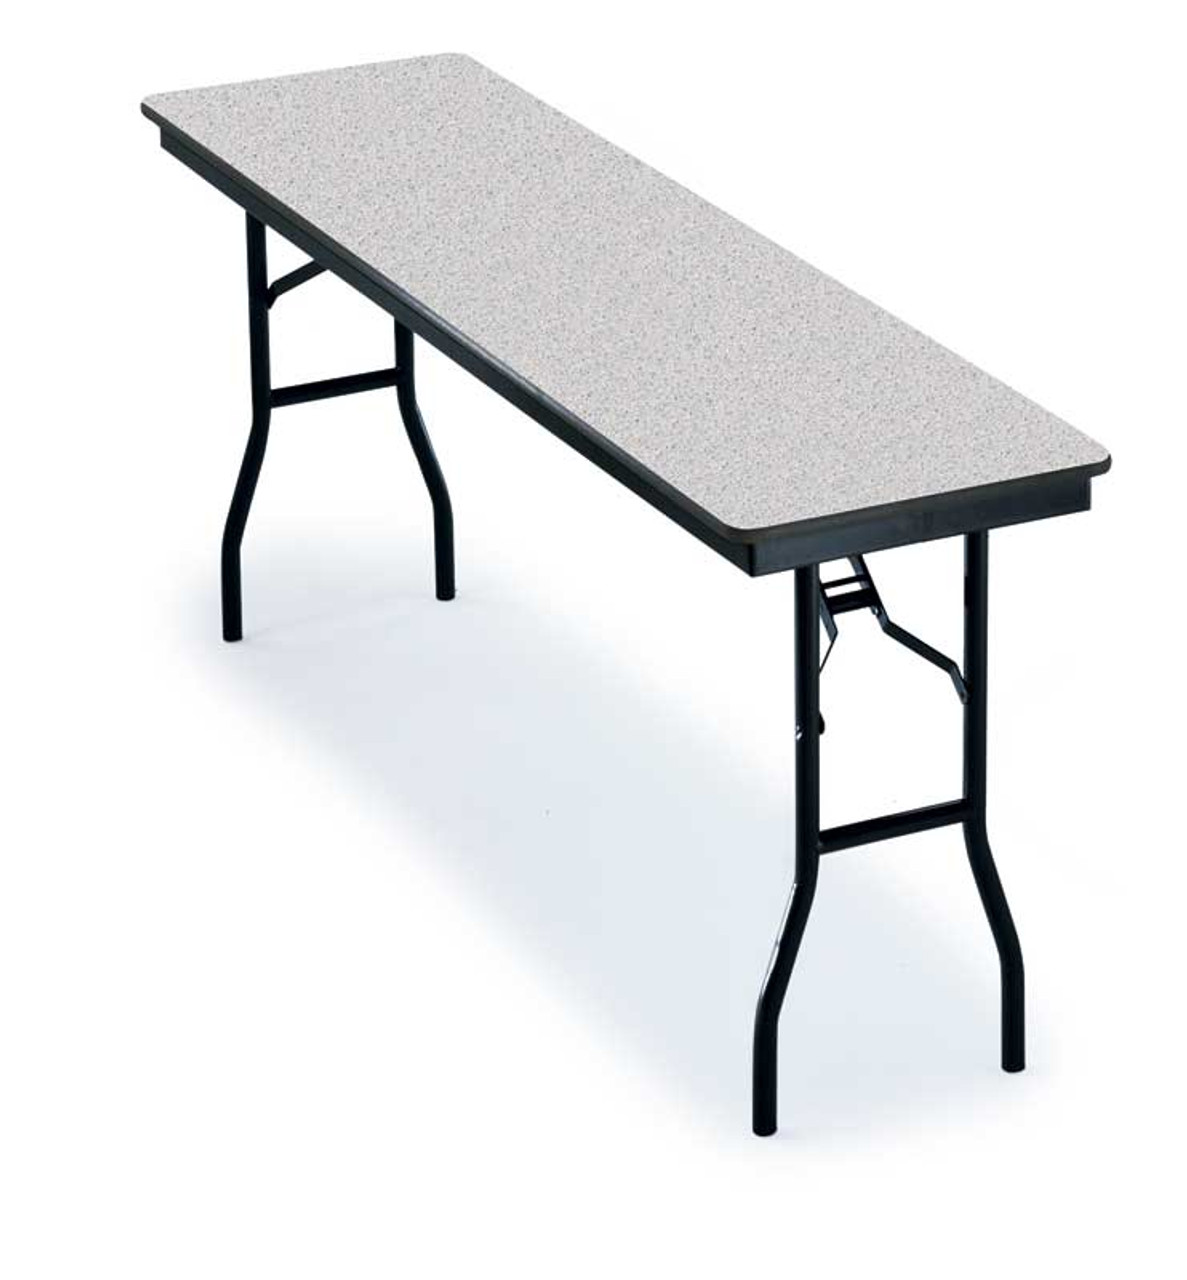 18 X 72 Folding Table.Midwest 618f Particleboard Core Seminar Folding Table 18 X 72